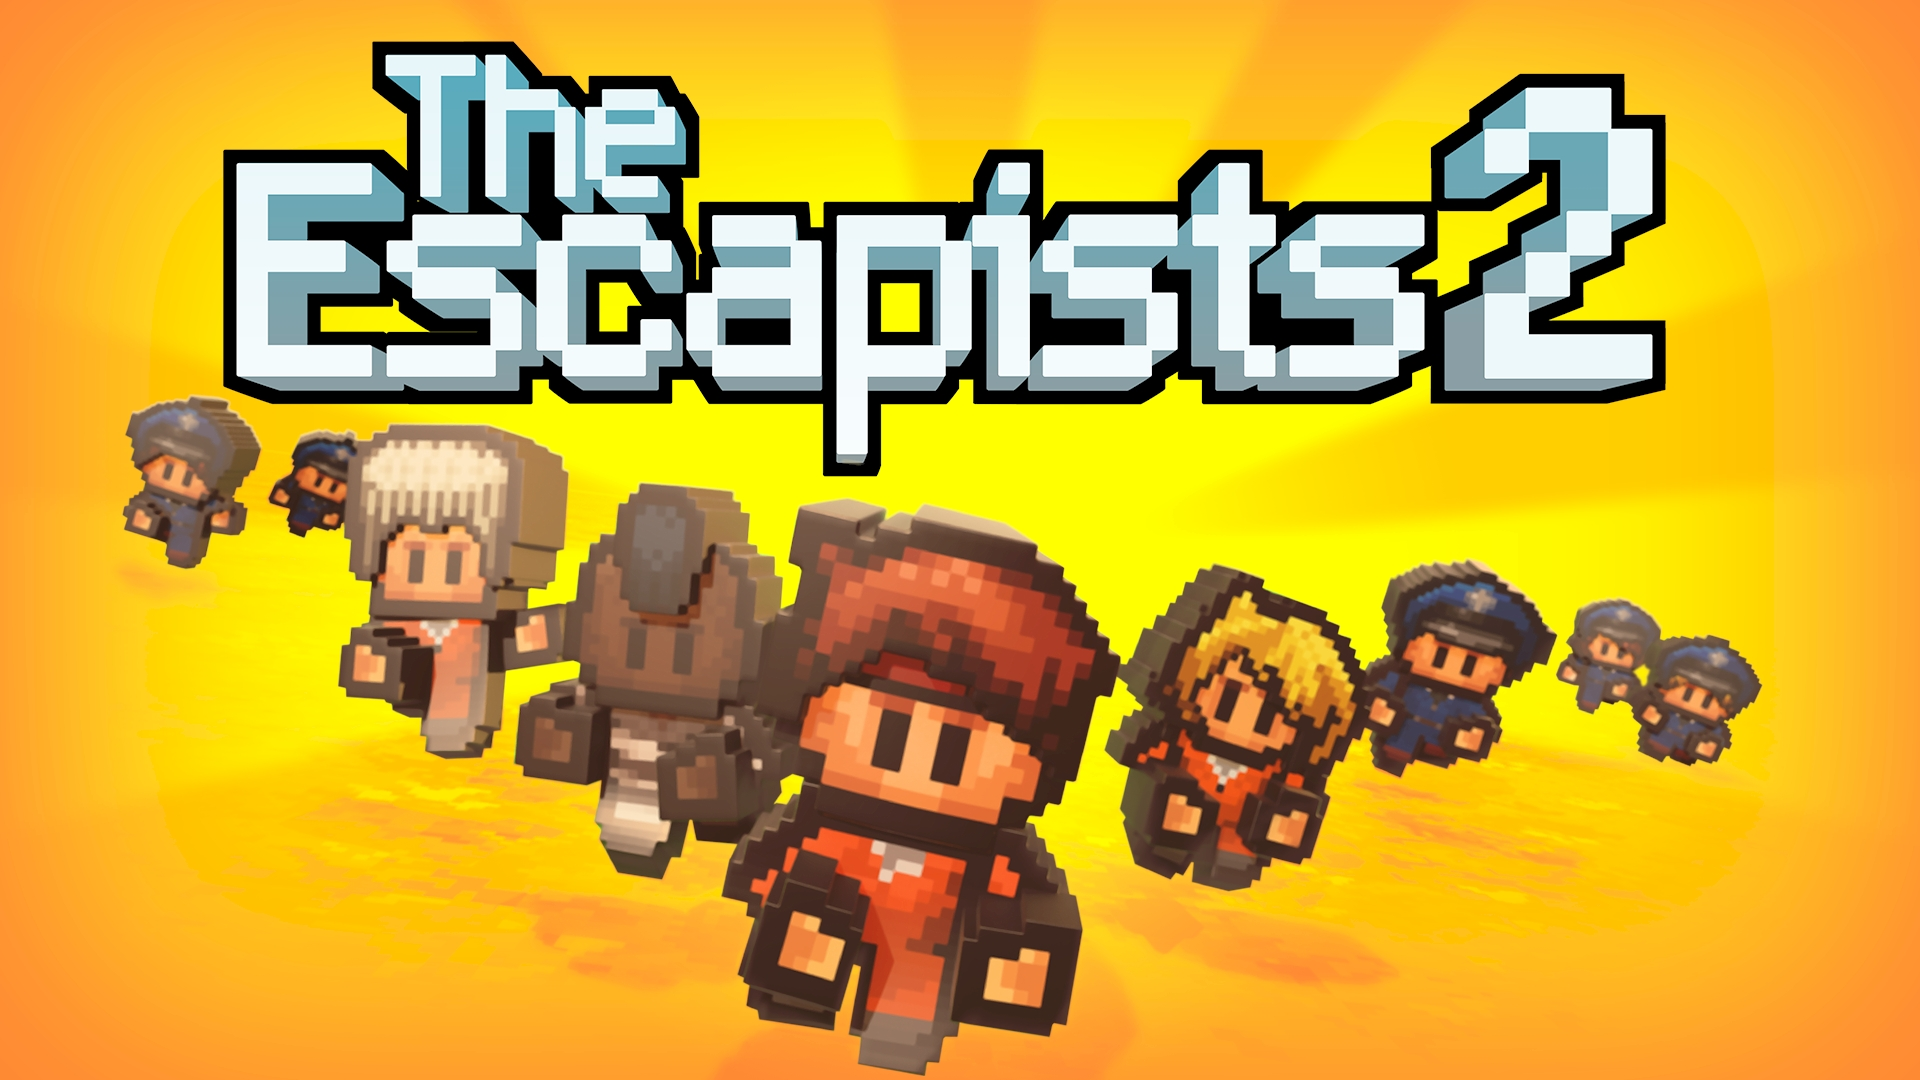 The Escapists 2 HD Wallpaper Background Image 1920x1080 ID 1920x1080